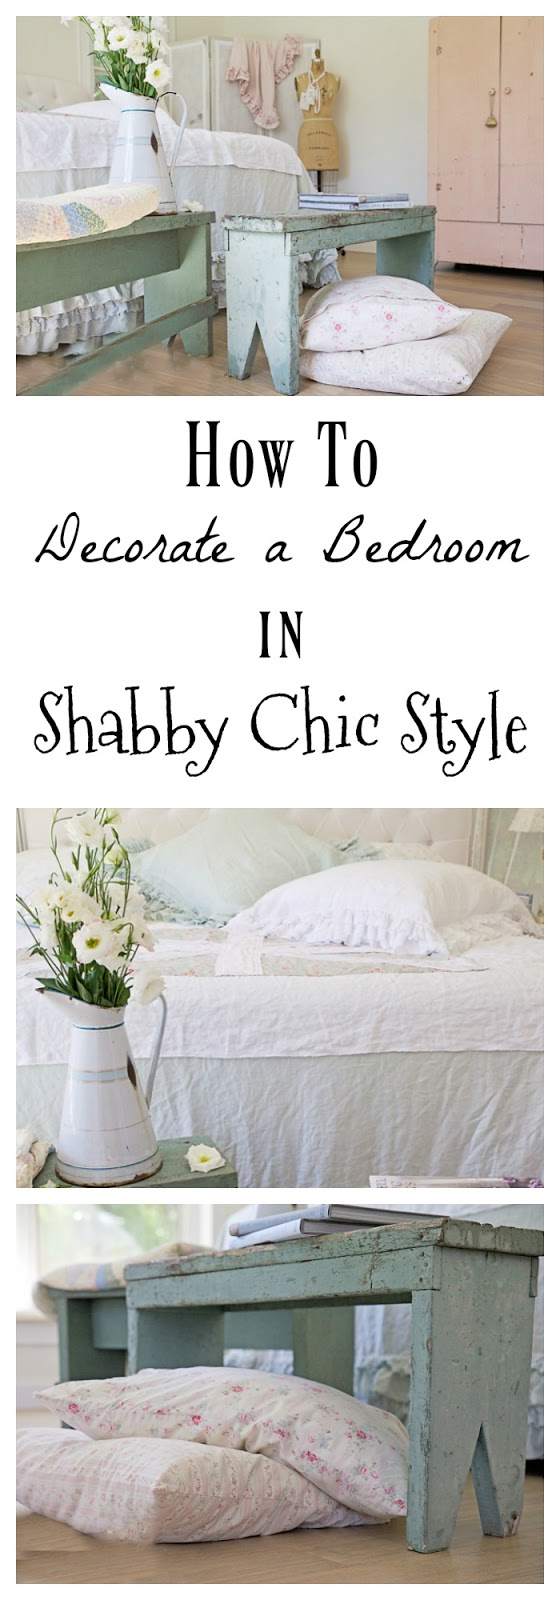 how to decorate a bedroom in shabby chic style